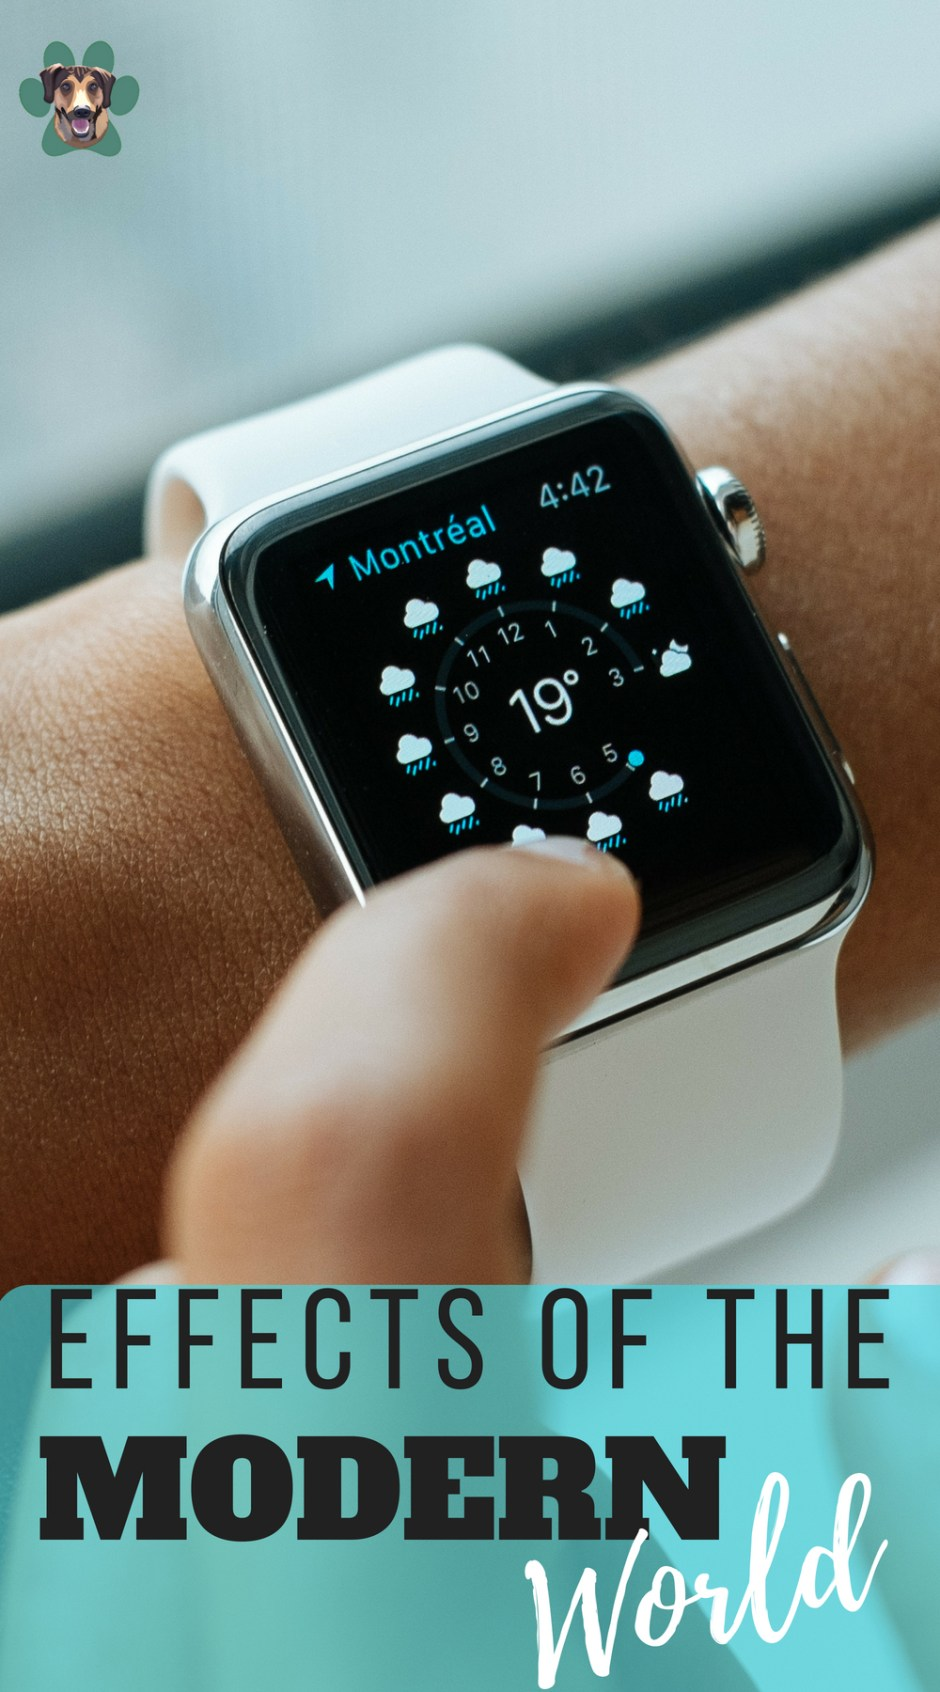 The modern world might not be as great as it appears to be. With all of these new tech developments and advancements come some new consequences that can have some very negative effects on our lives. Thankfully, these effects can be quite easy to overcome once you know how.